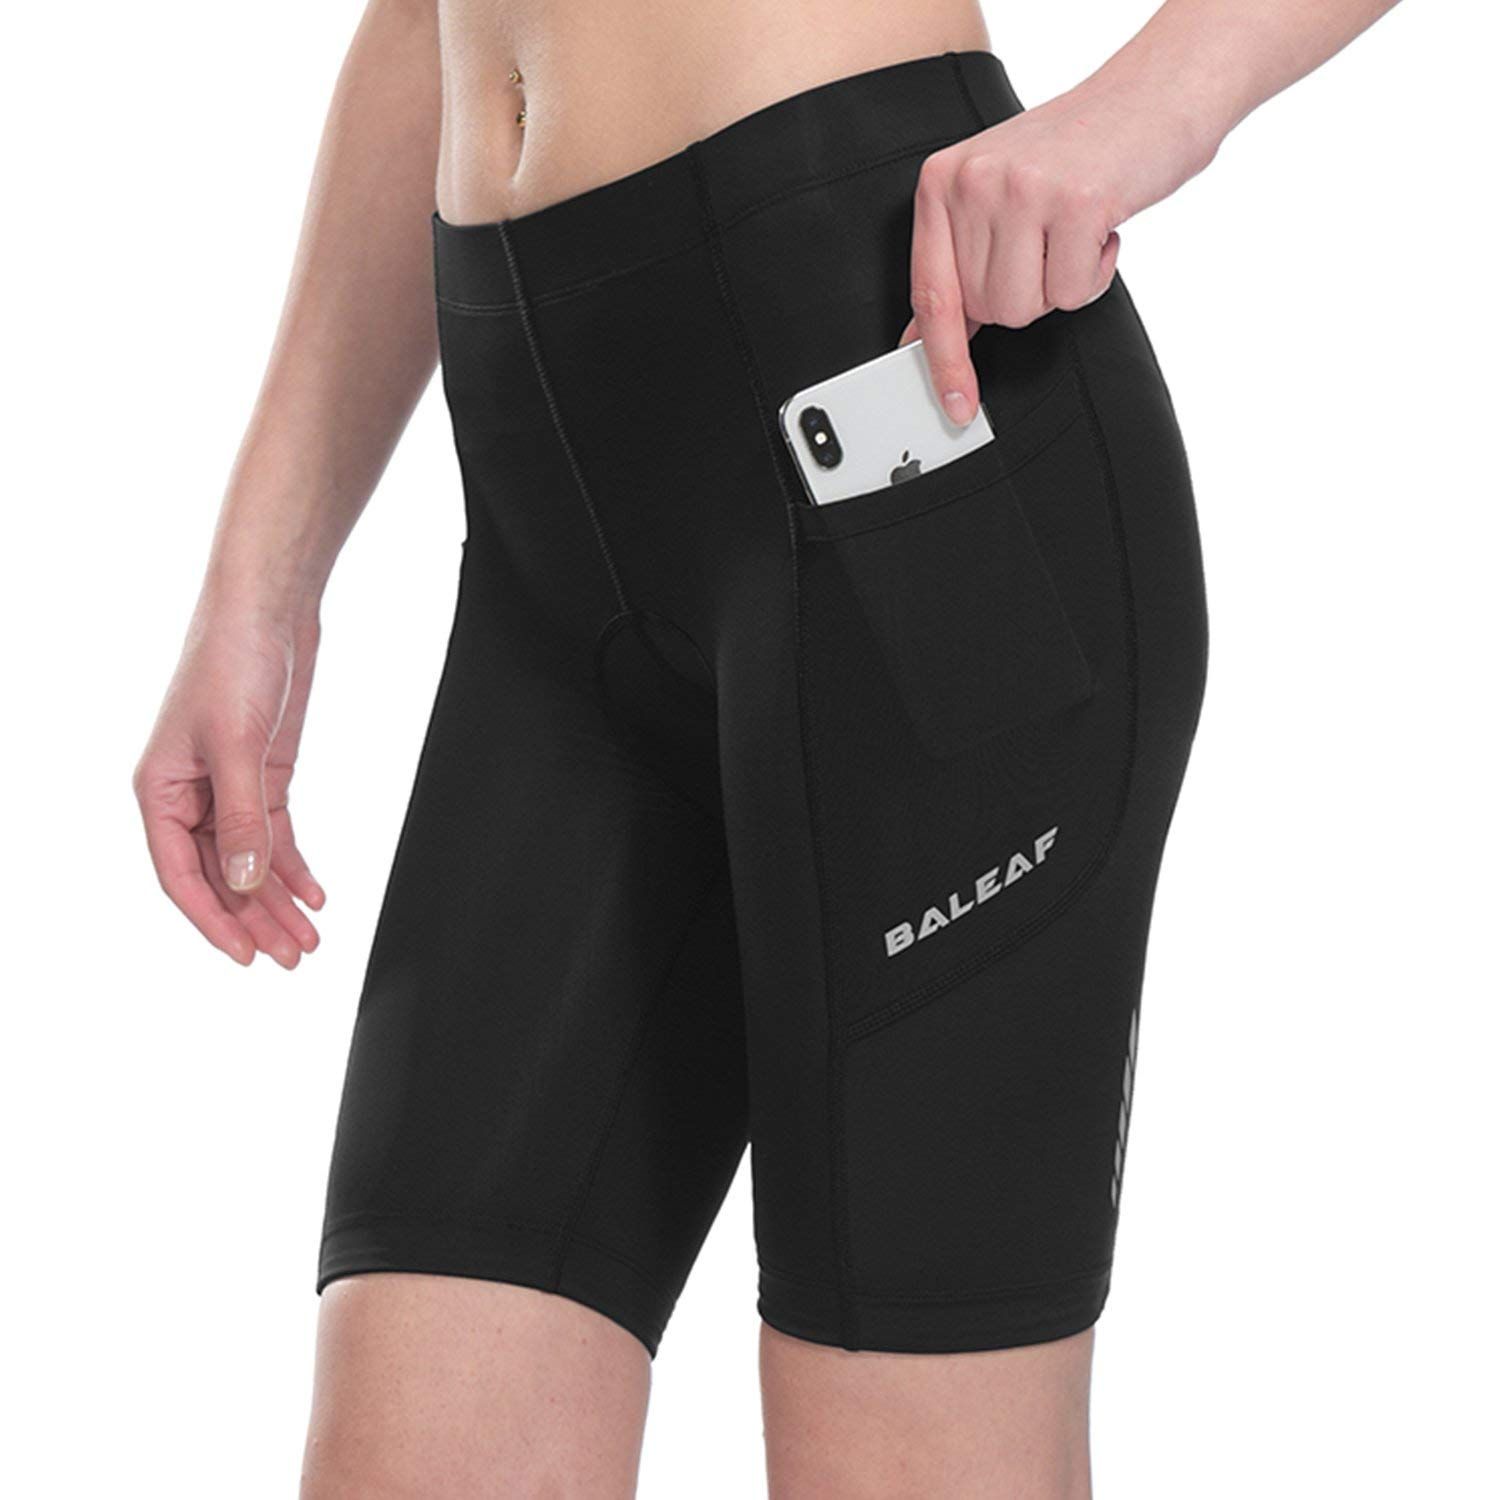 Baleaf Pro Indoor Cycling Short For Women